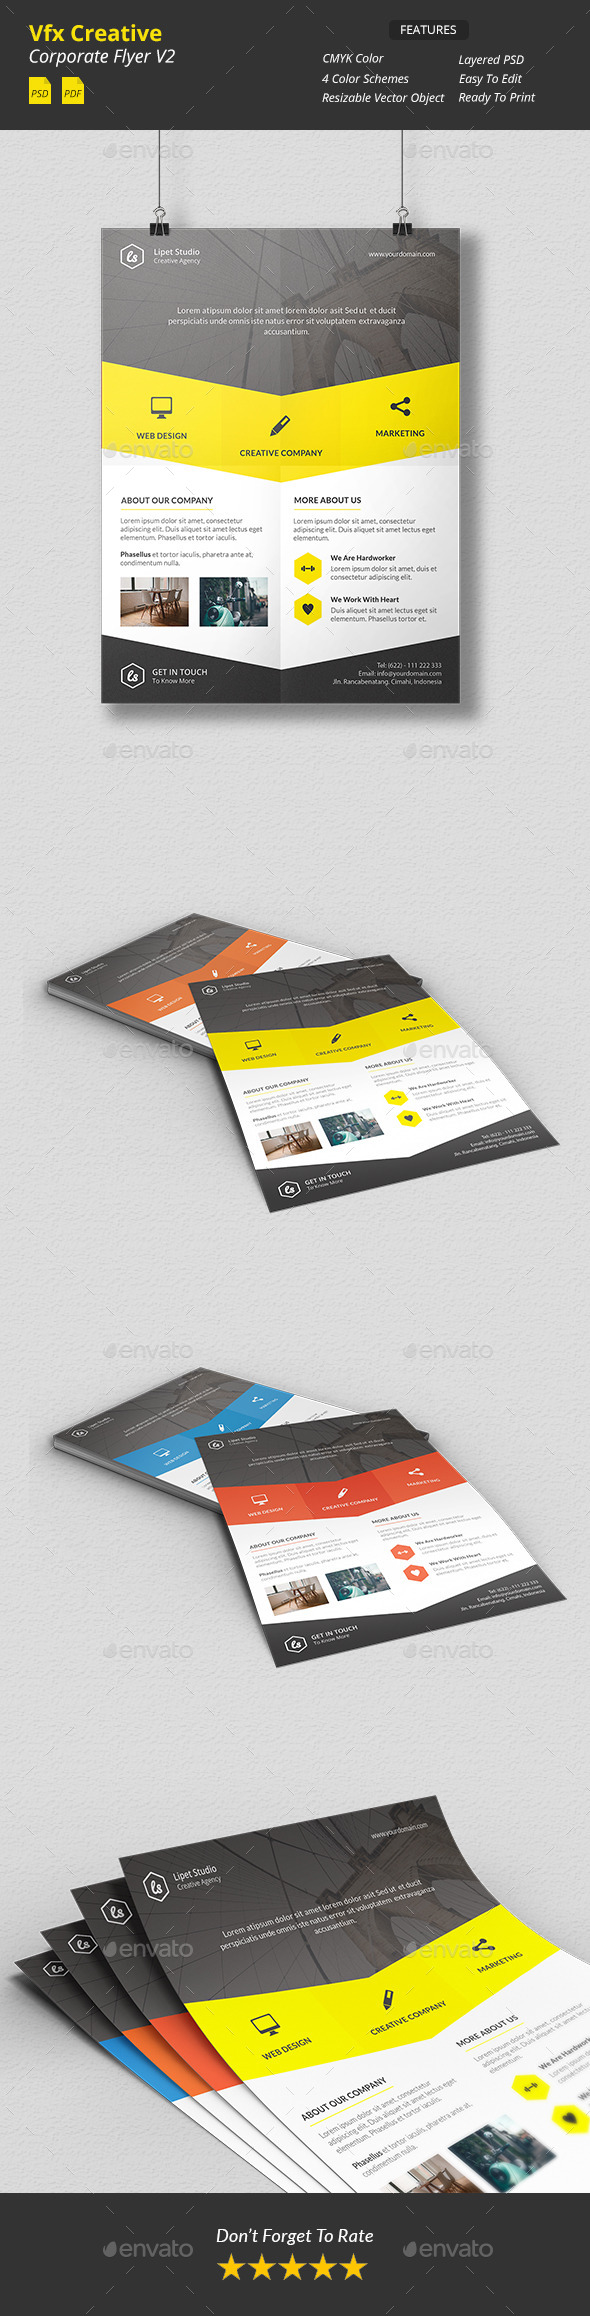 Vfx - Creative Corporate Flyer v2 - Corporate Flyers